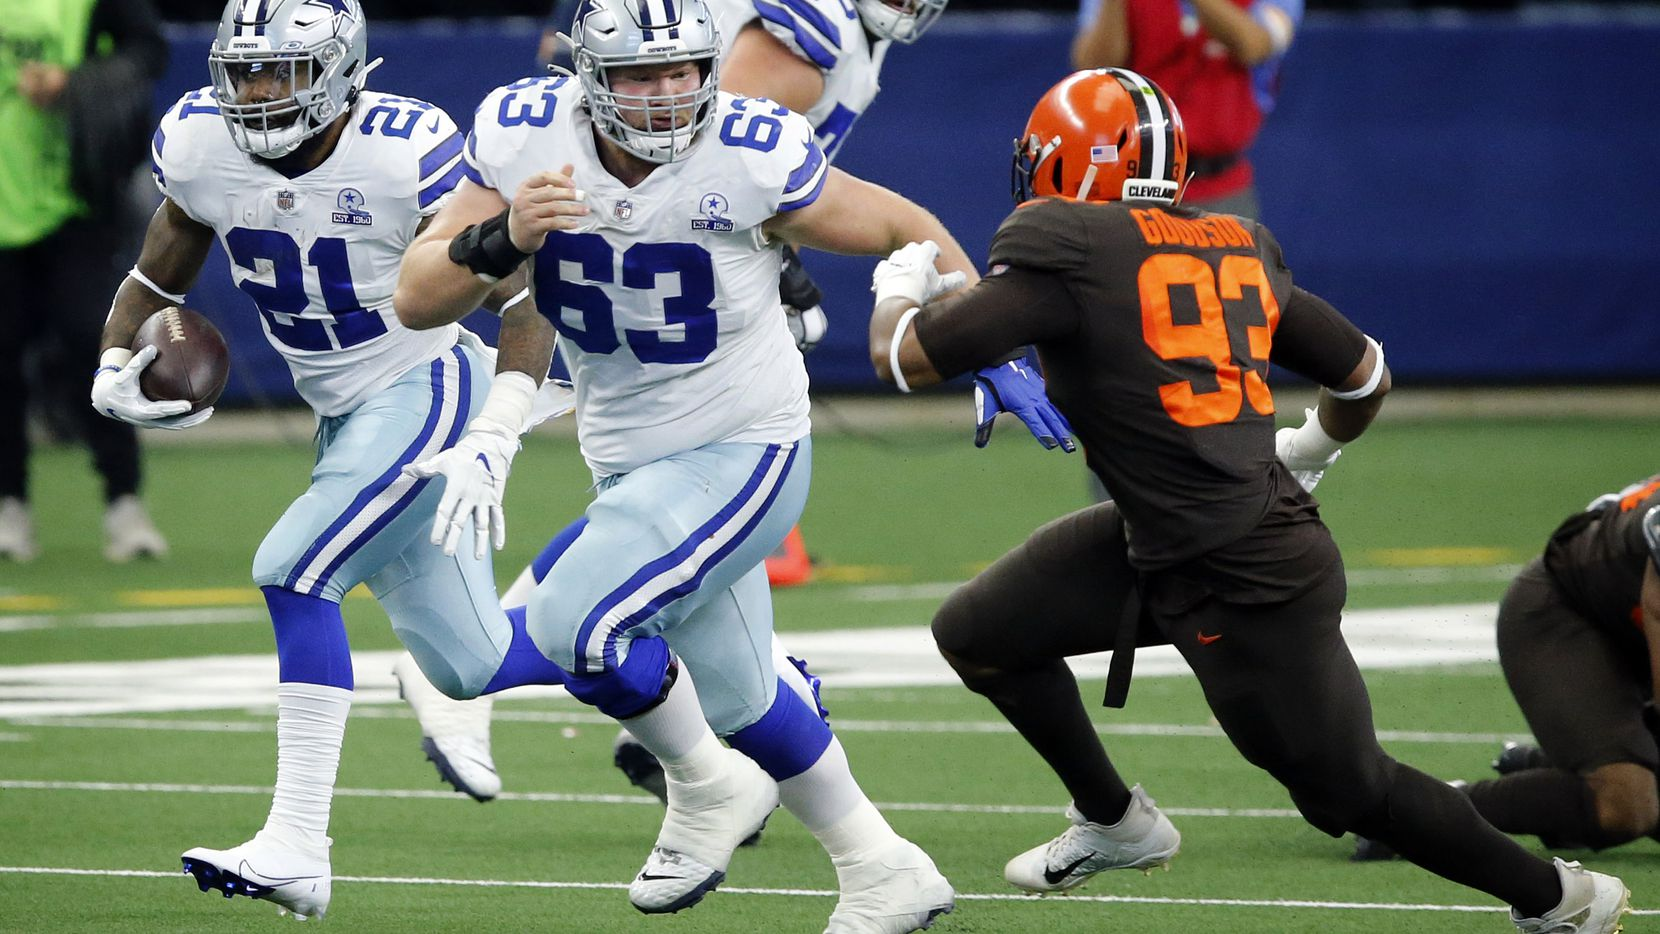 Dallas Cowboys running back Ezekiel Elliott (21) gets a lead block by center Tyler Biadasz (63) on Cleveland Browns middle linebacker B.J. Goodson (93) during the first quarter at AT&T Stadium in Arlington, Texas, Sunday, October 4, 2020.